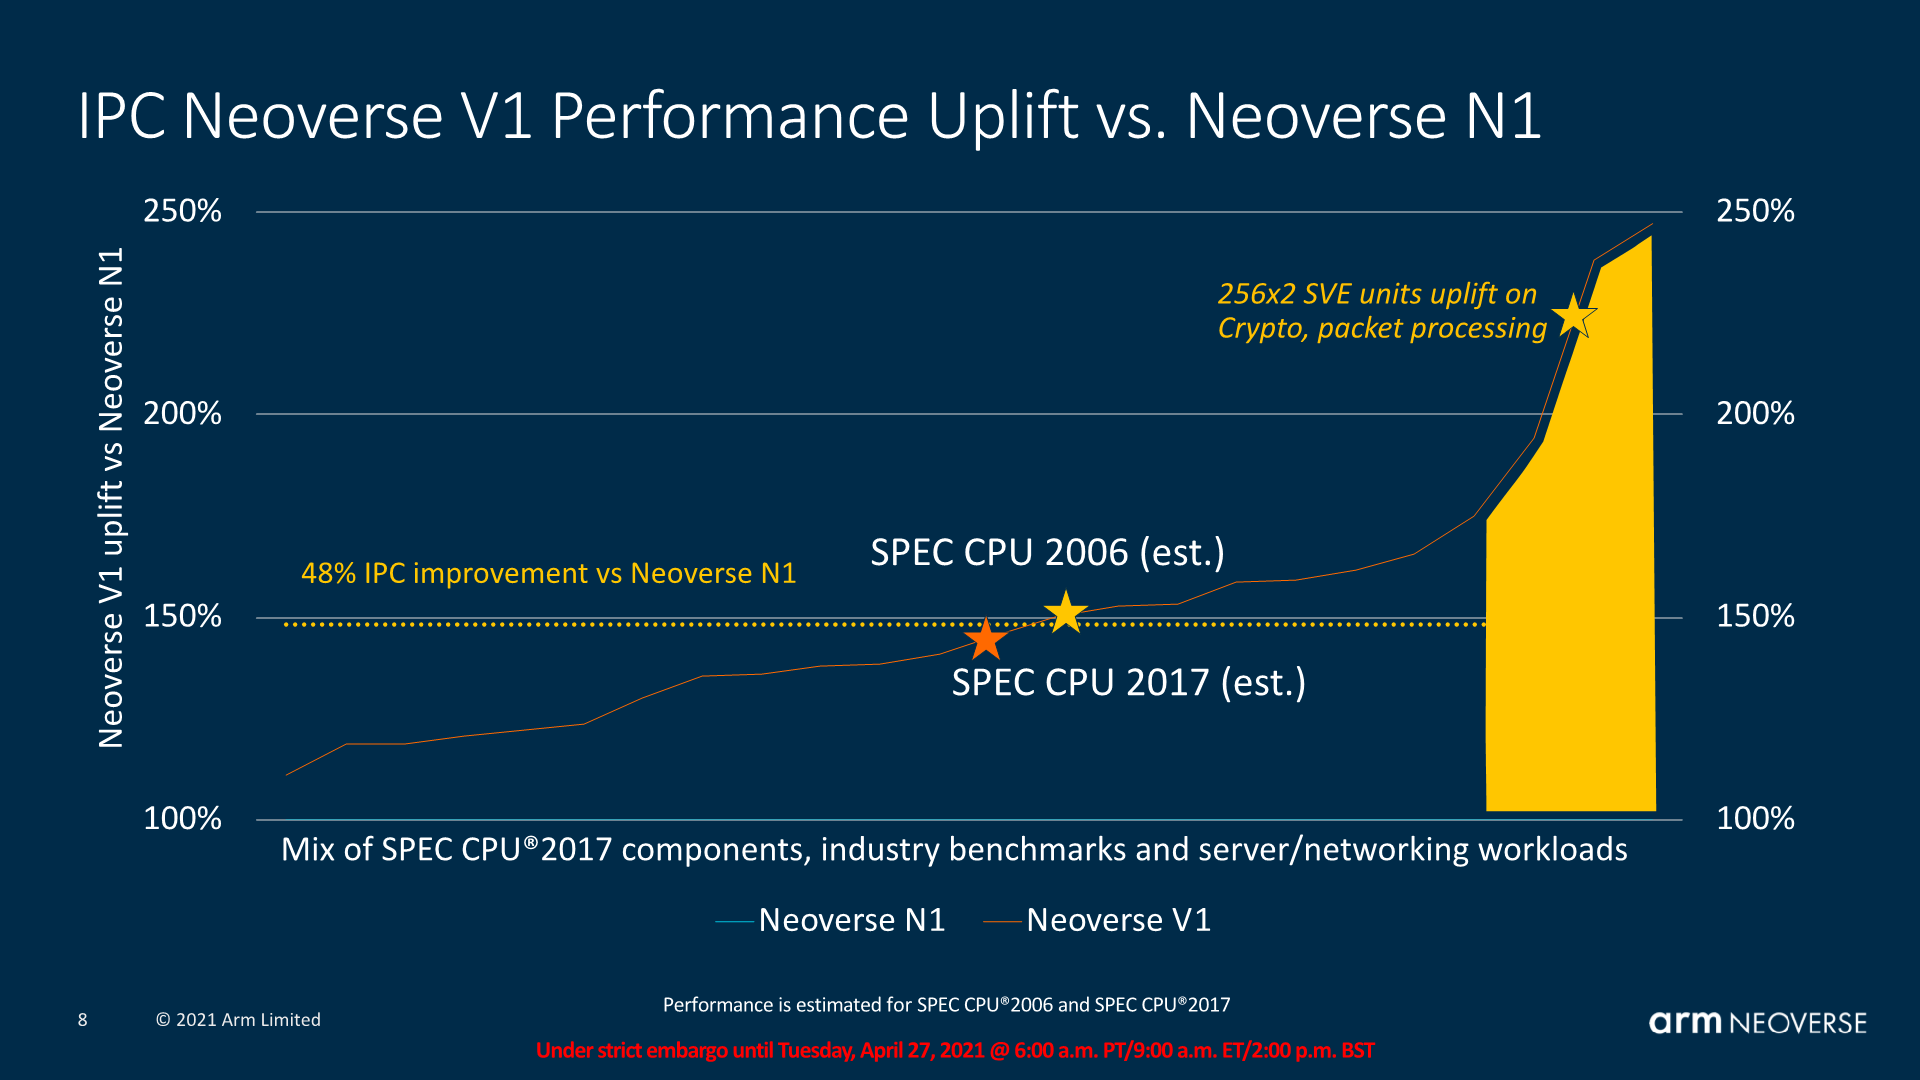 ARM Neoverse V1 15